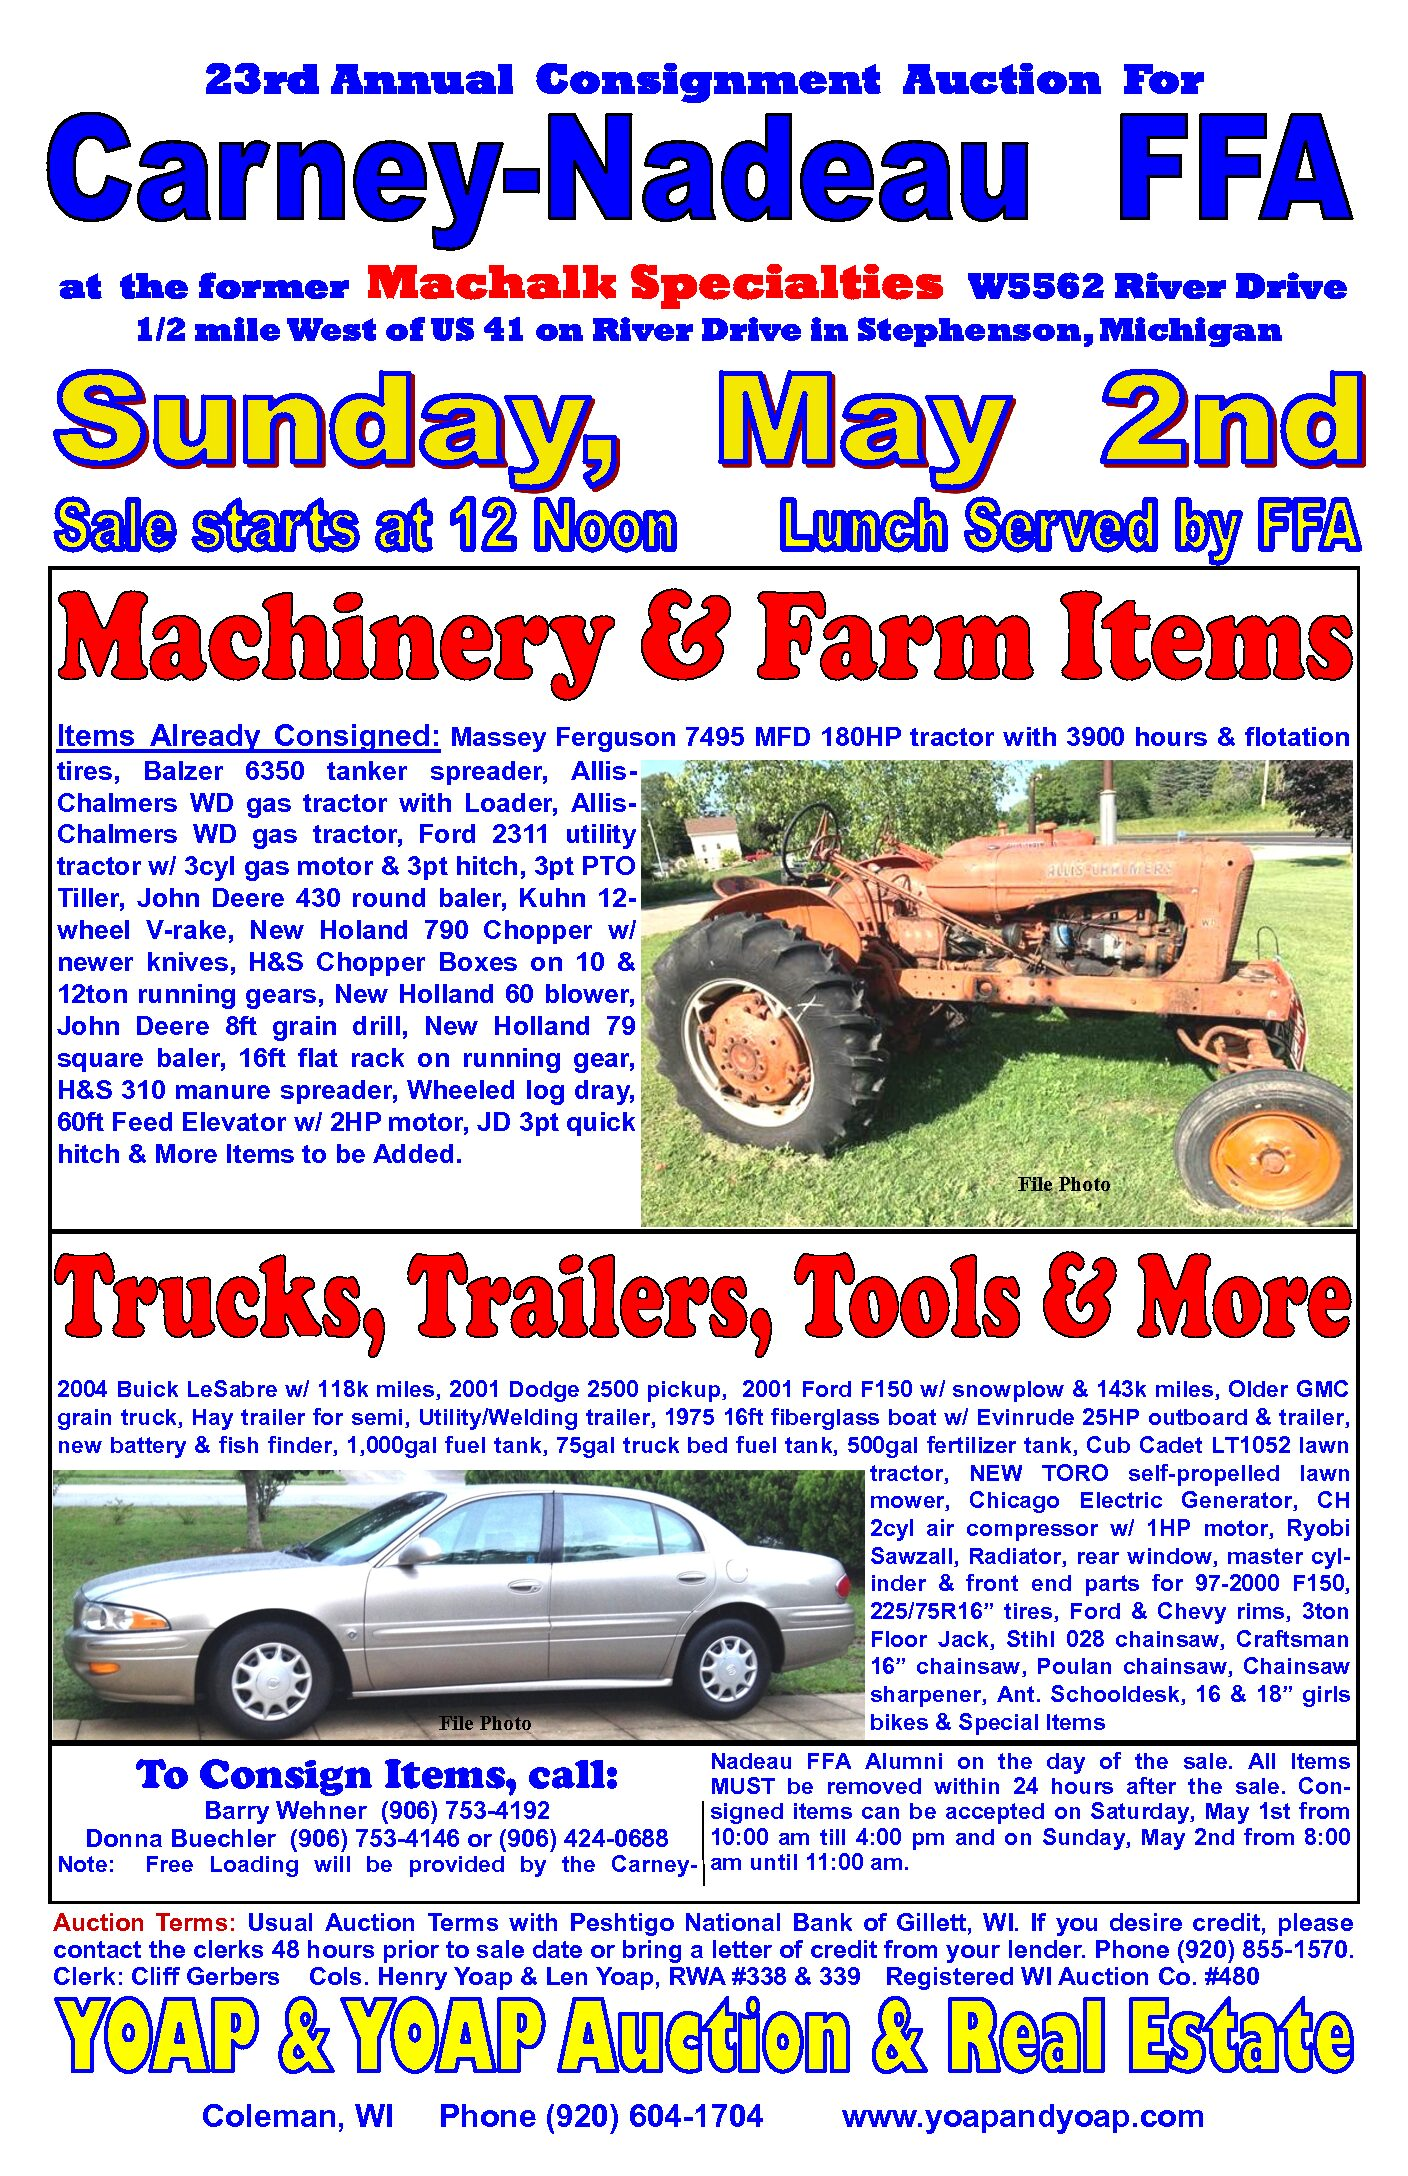 Annual Consignment Auction in Stephenson Michigan